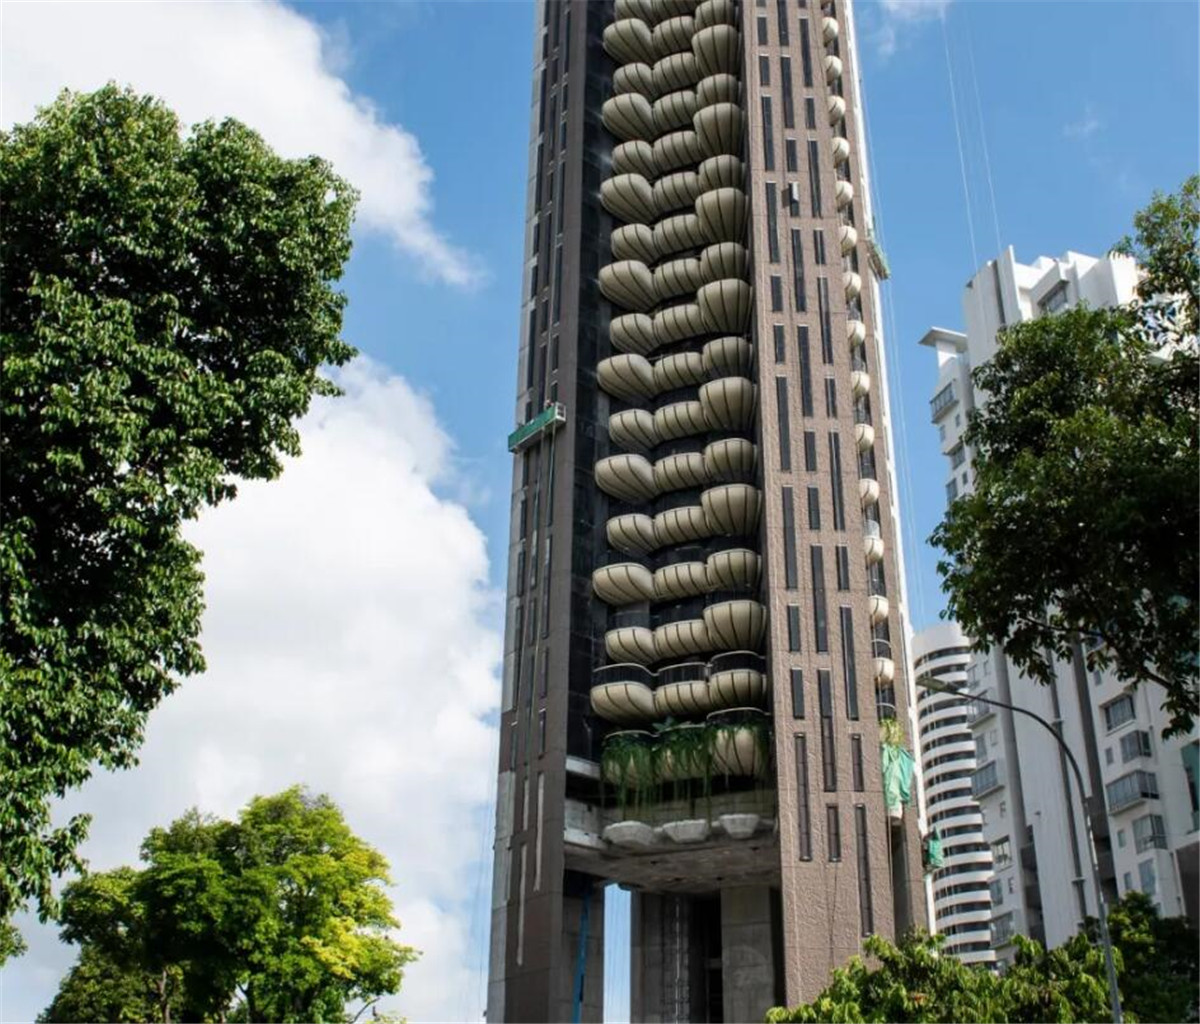 How to build green buildings and green homes in the future